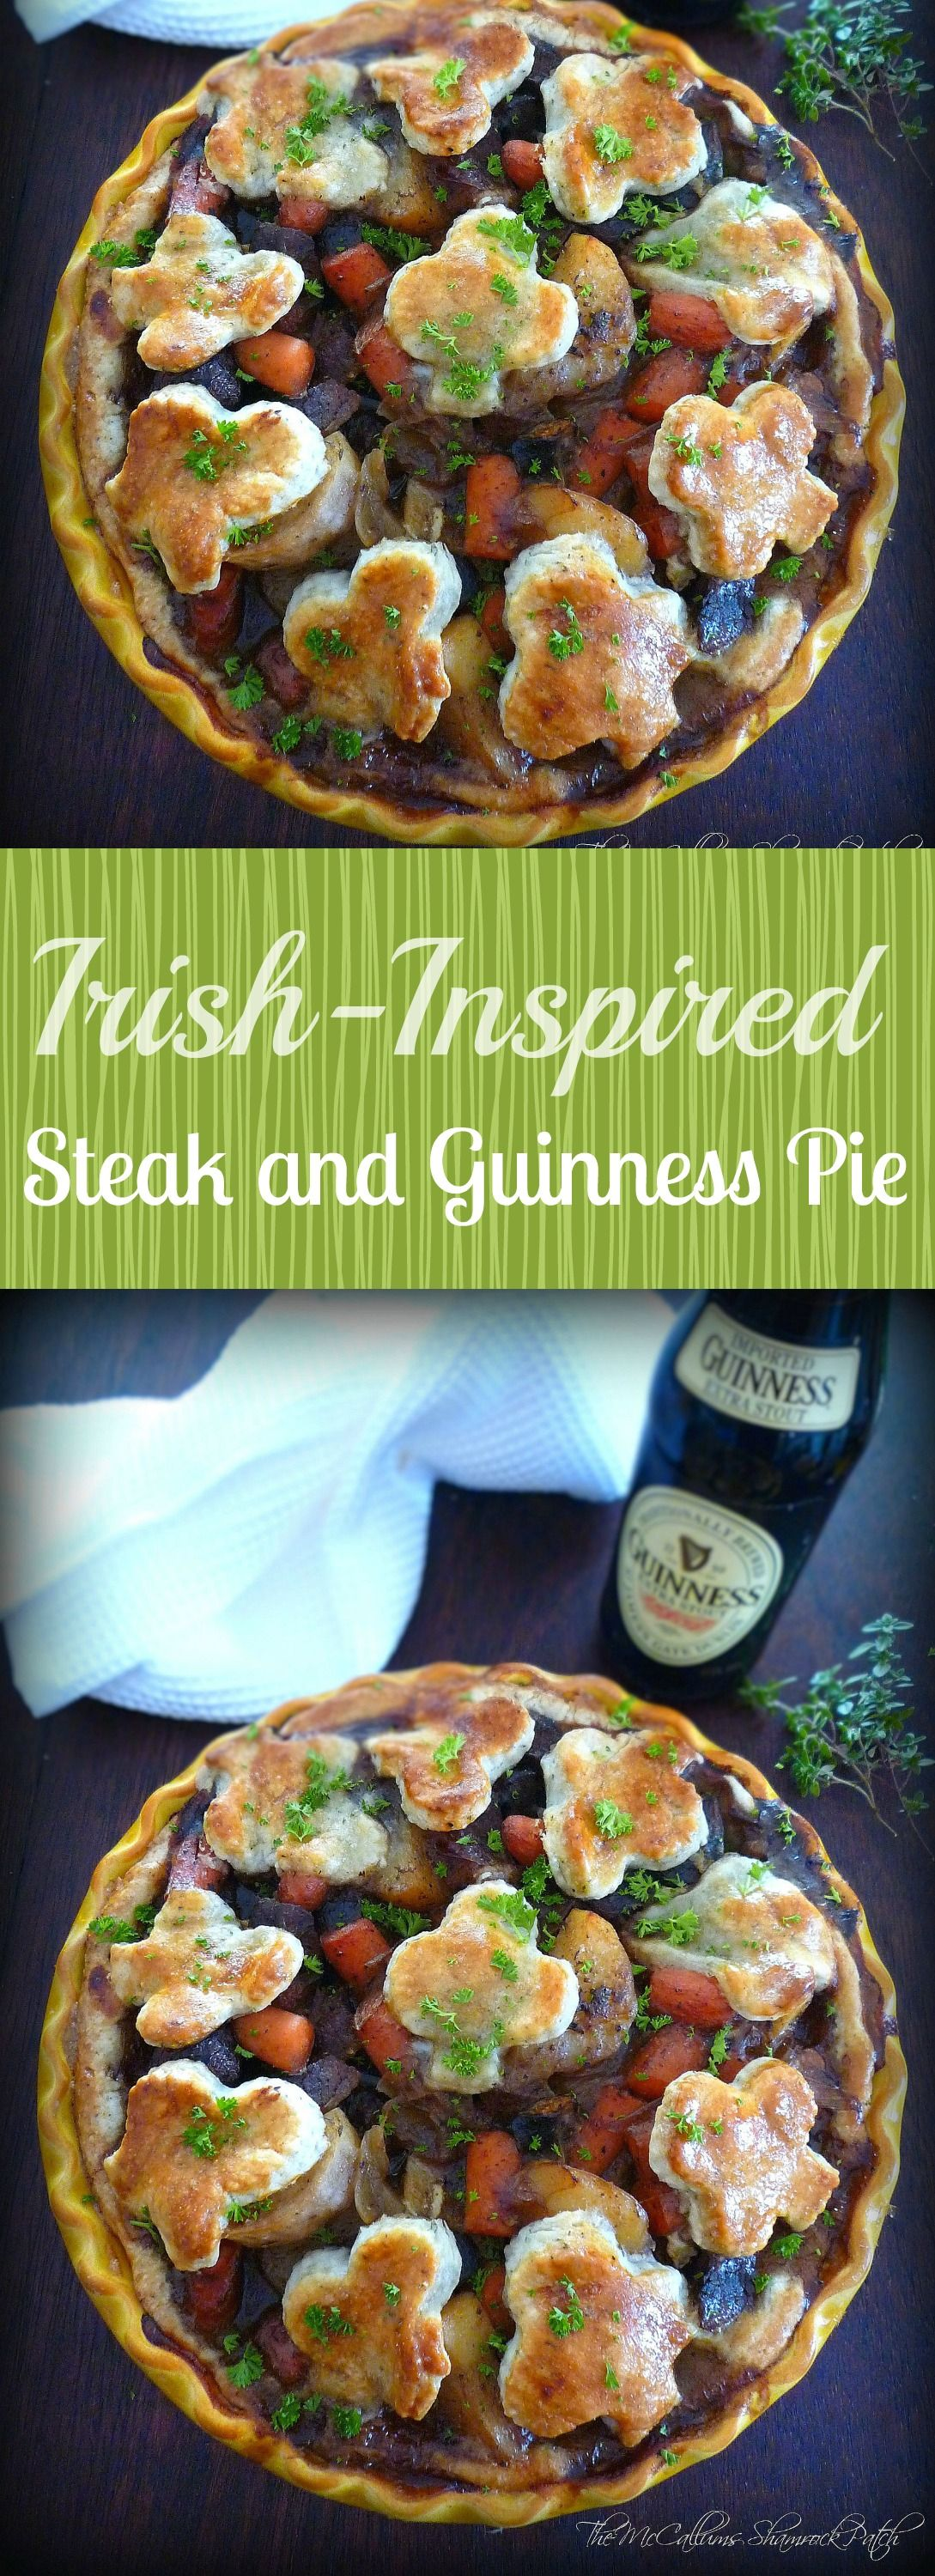 Steak & Guinness Pie | Steak, guinness pie, Guinness pies ...